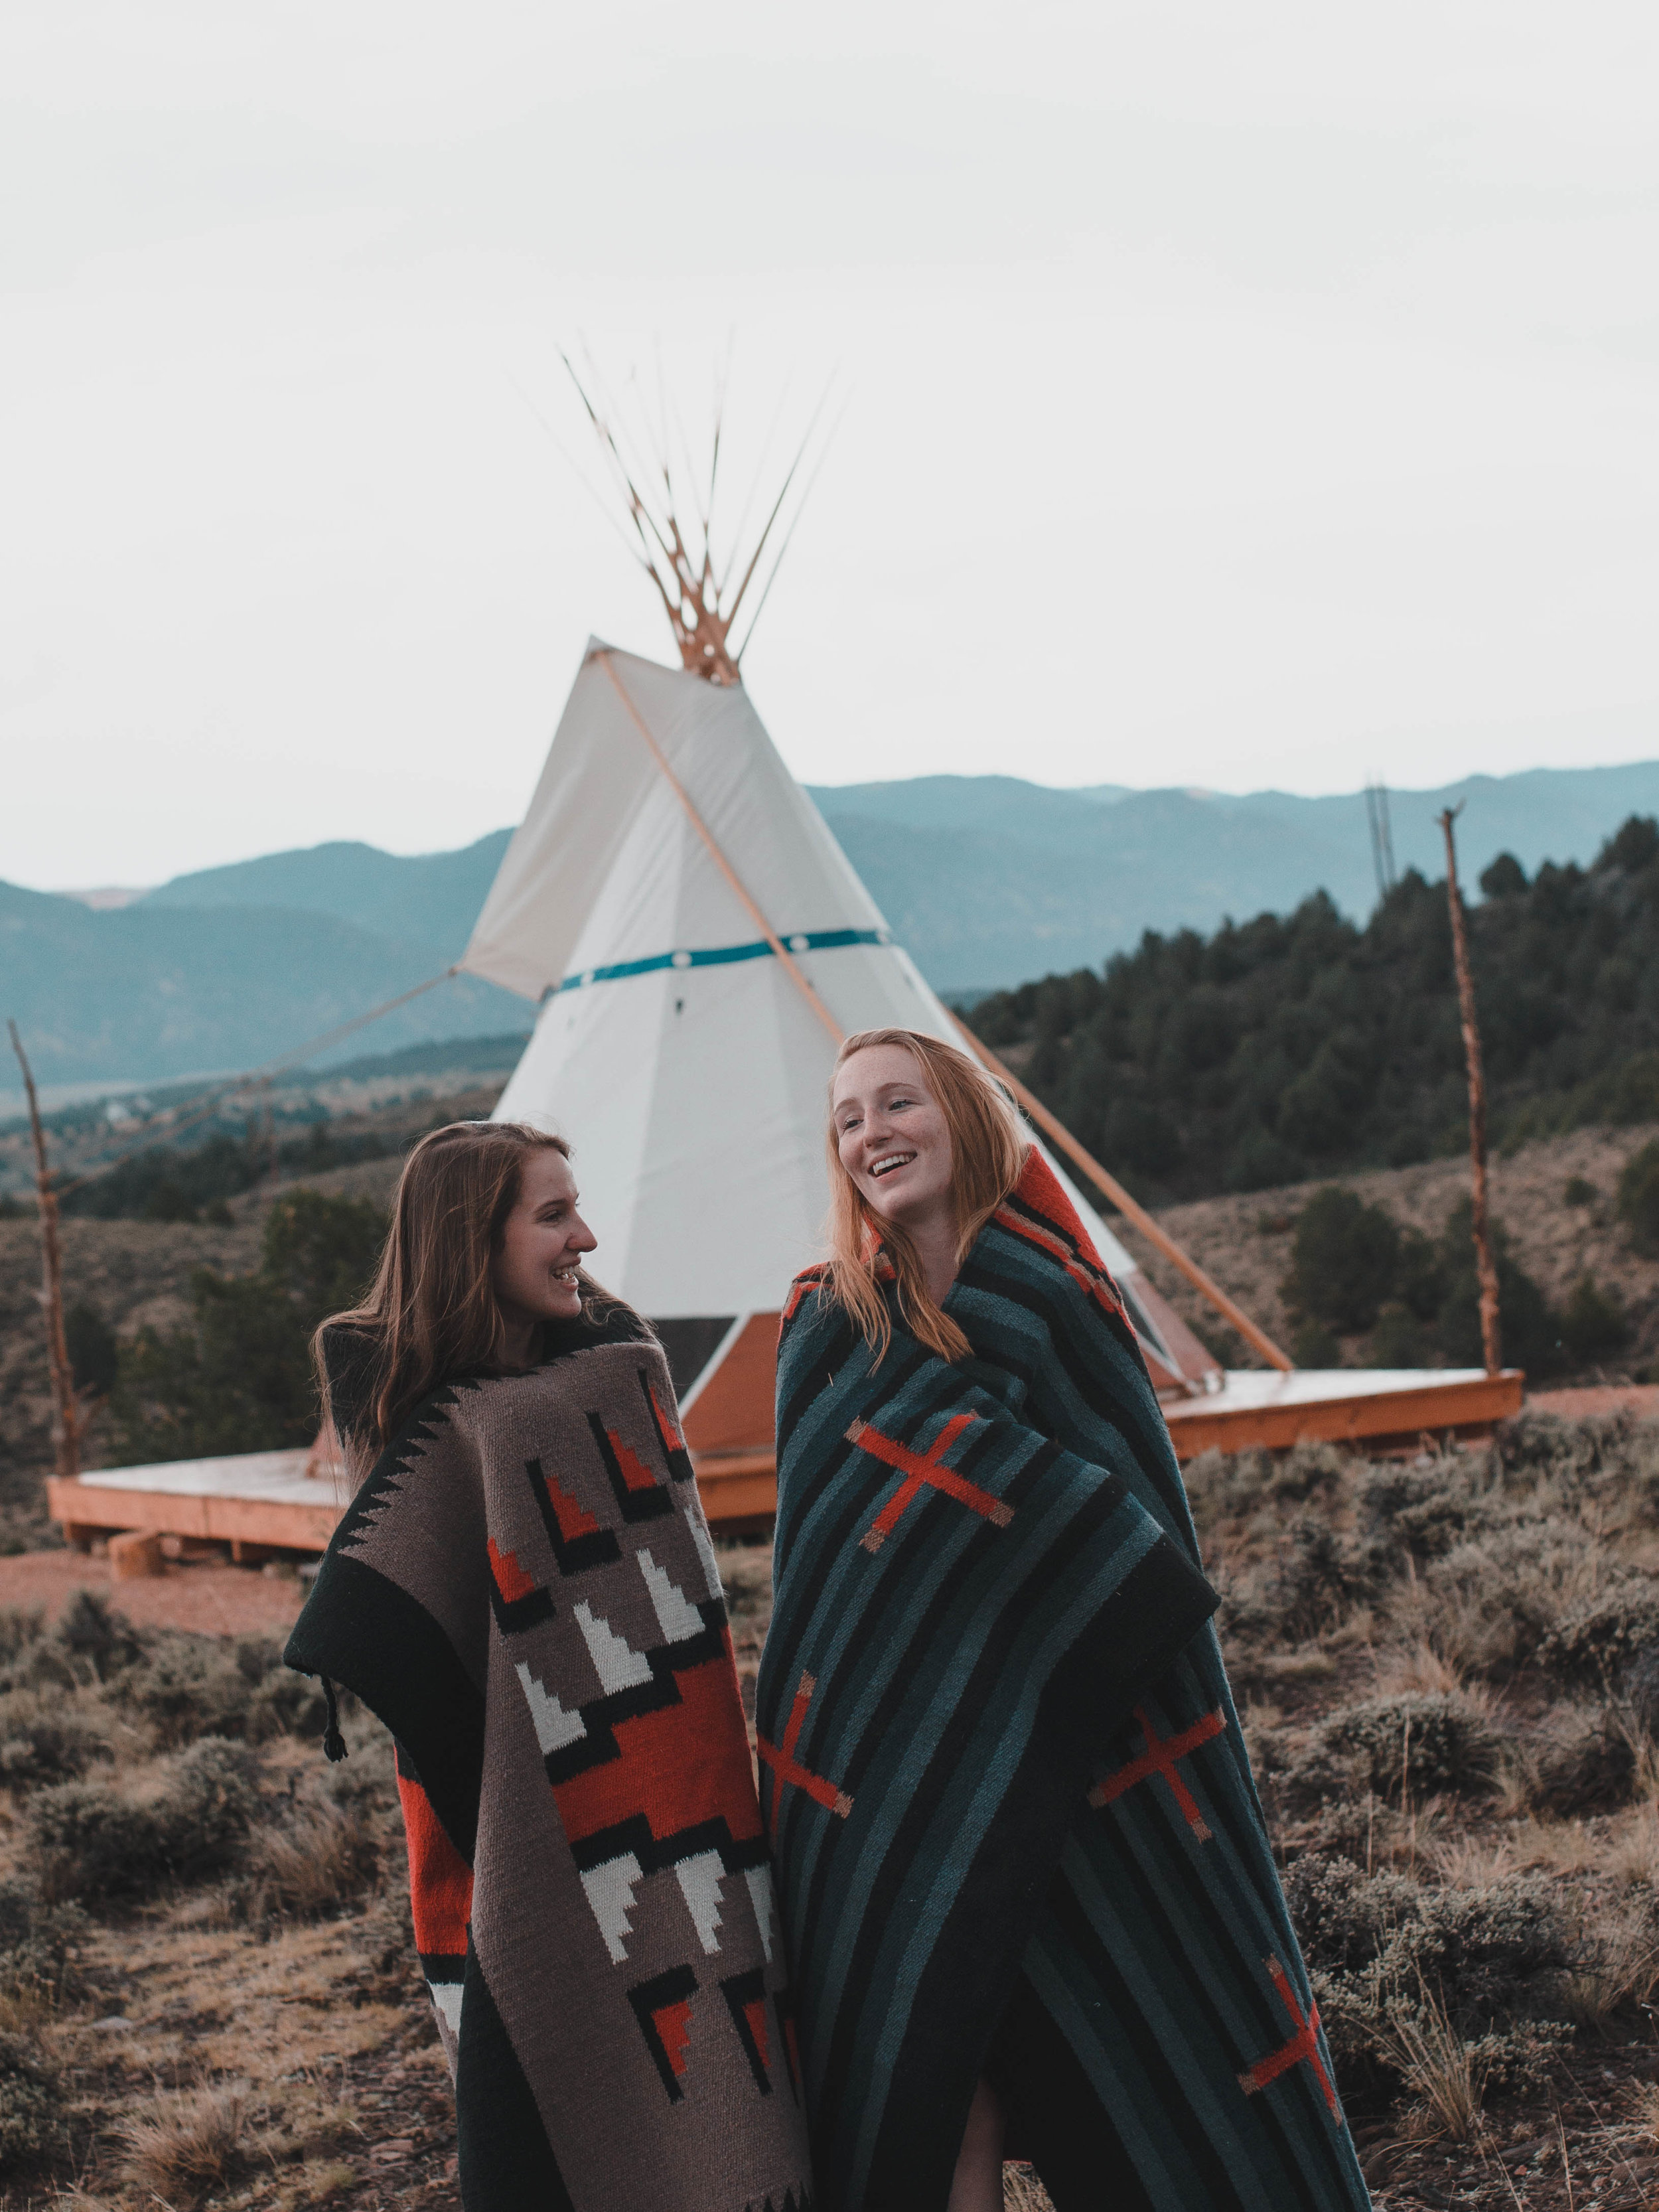 We rented a tipi for two nights near Bryce Canyon